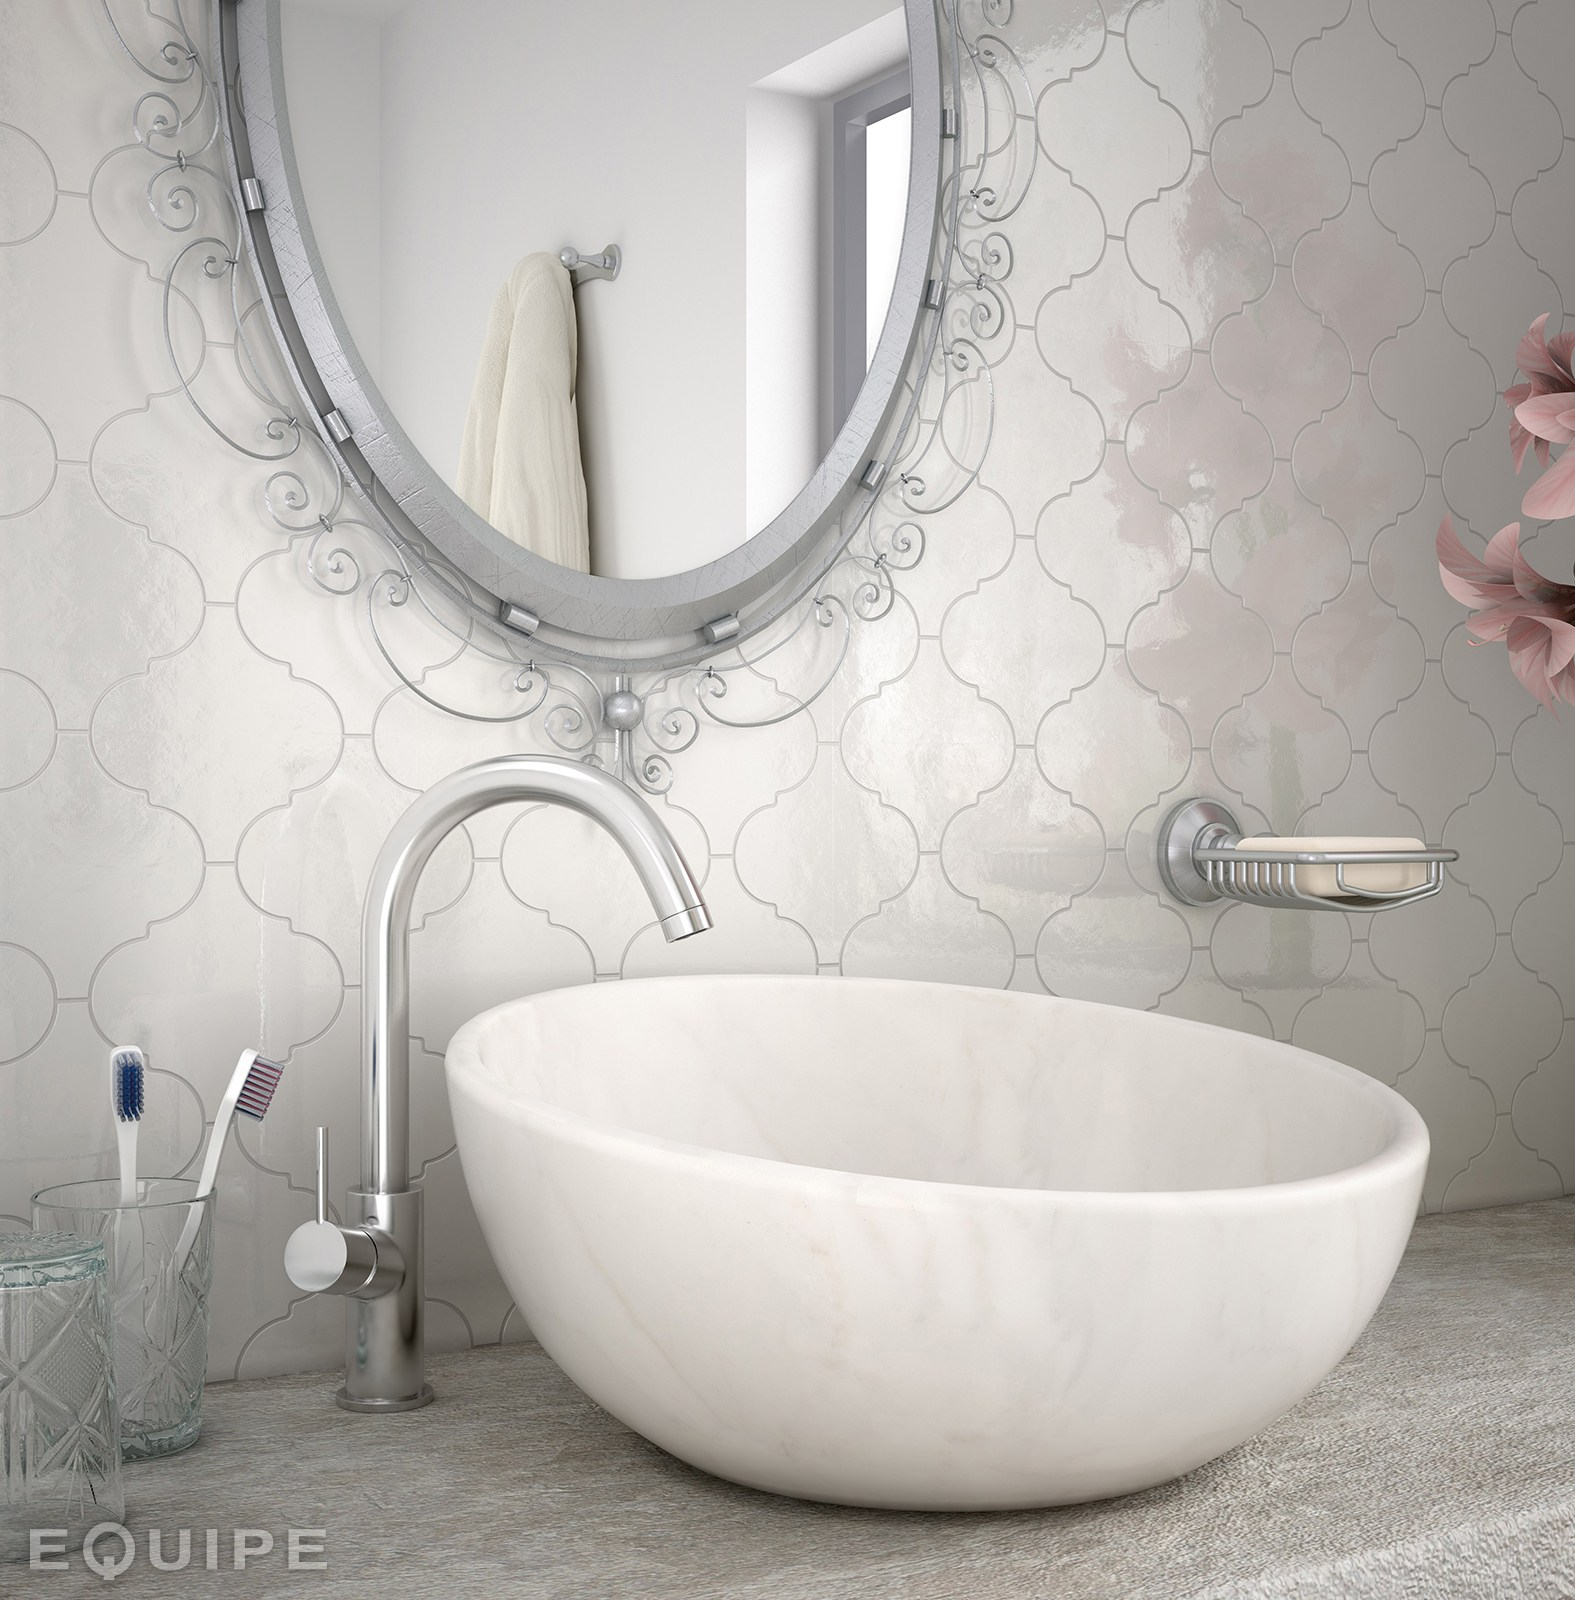 ceramic wall tiles scale by equipe ceramicas. Black Bedroom Furniture Sets. Home Design Ideas